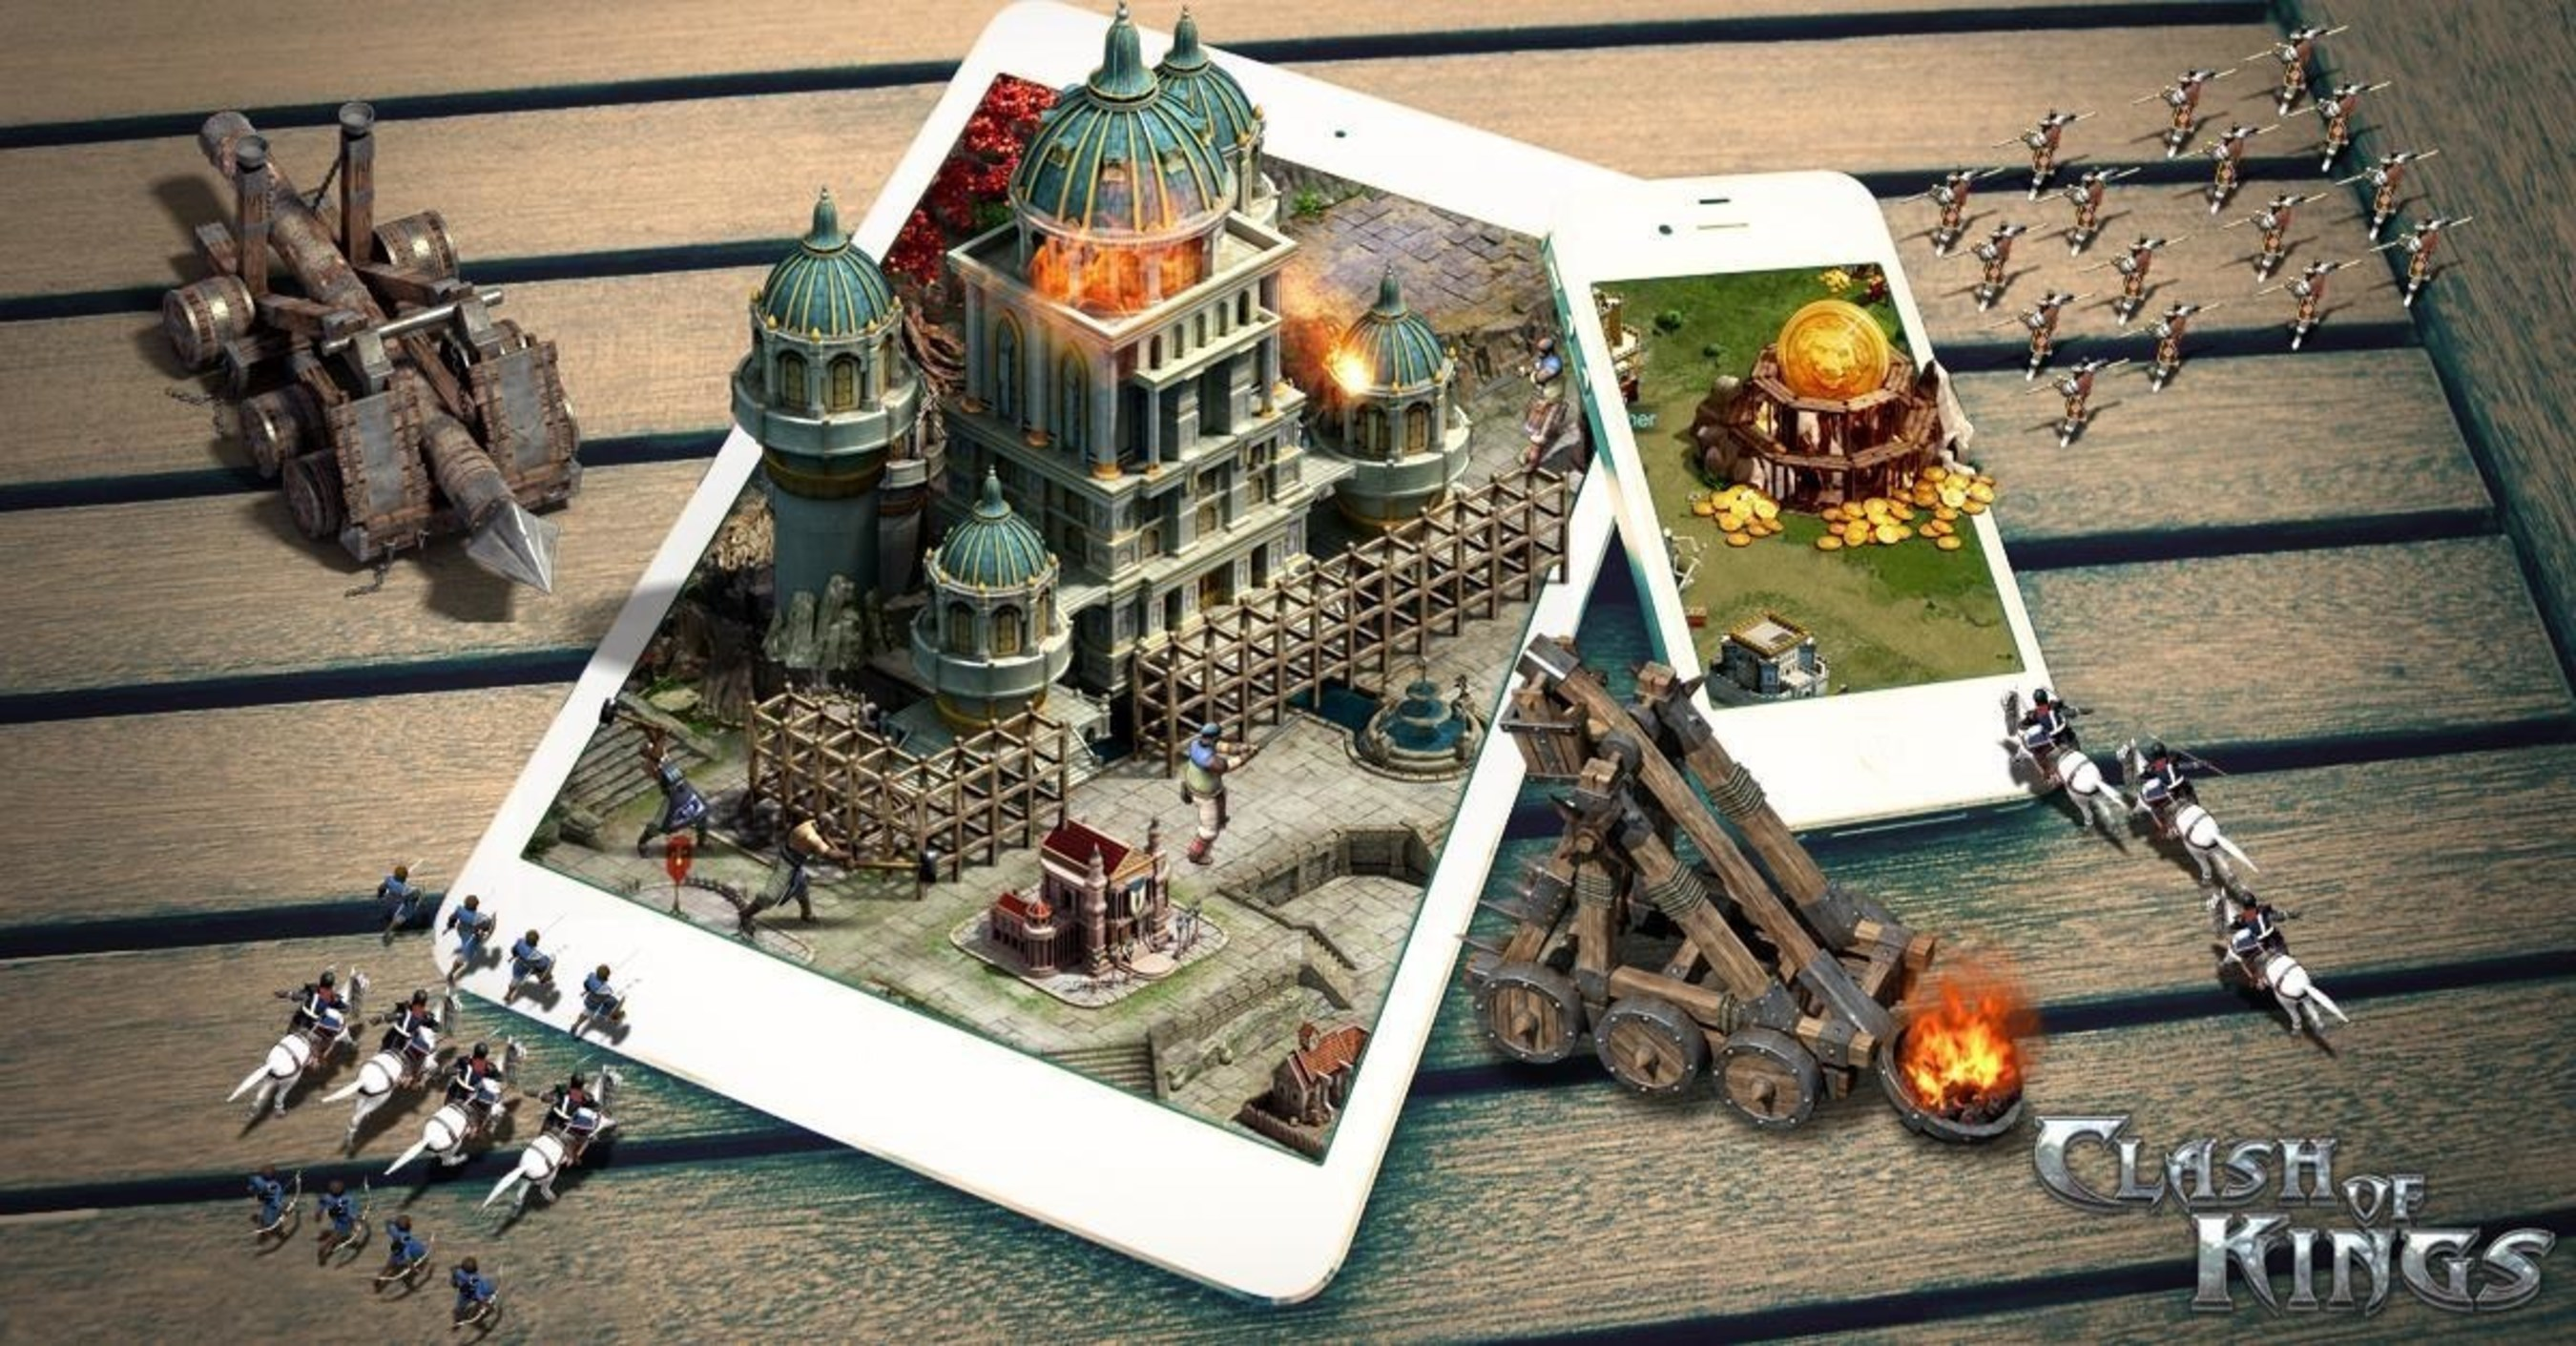 Clash of Kings is a real-time strategy game where players build an empire and defend it